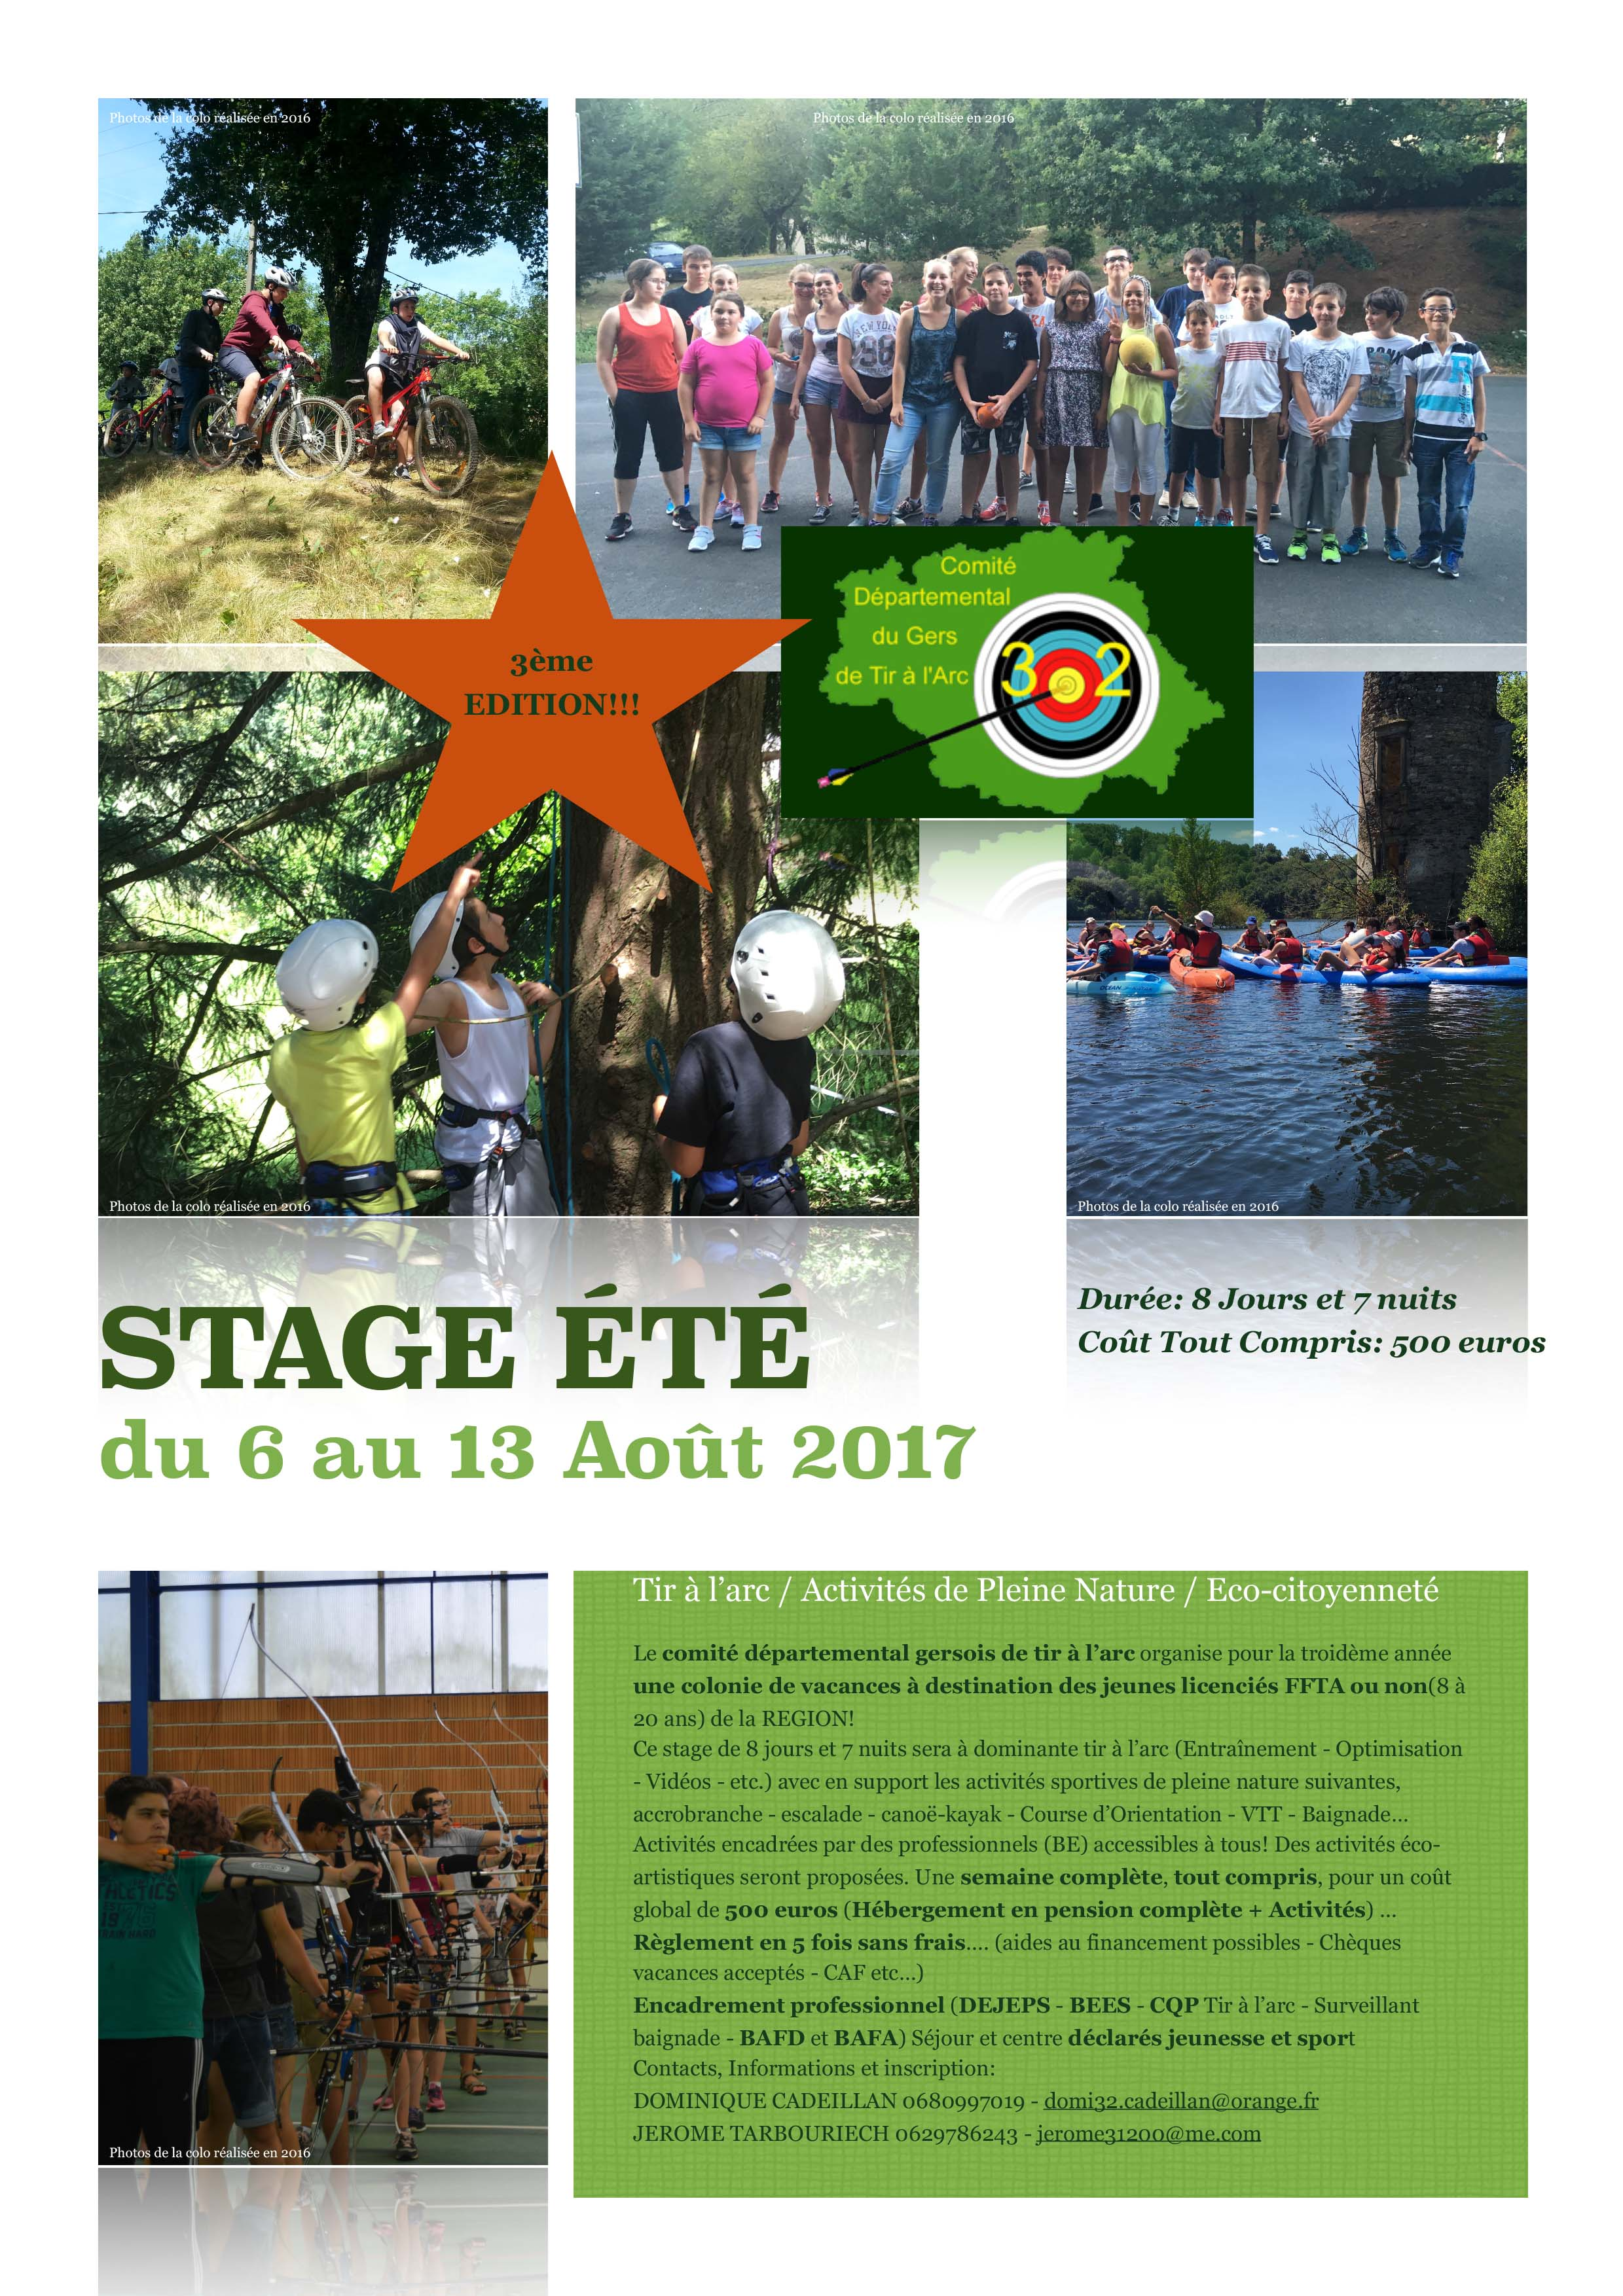 Stage-ete-CD32TA-2017